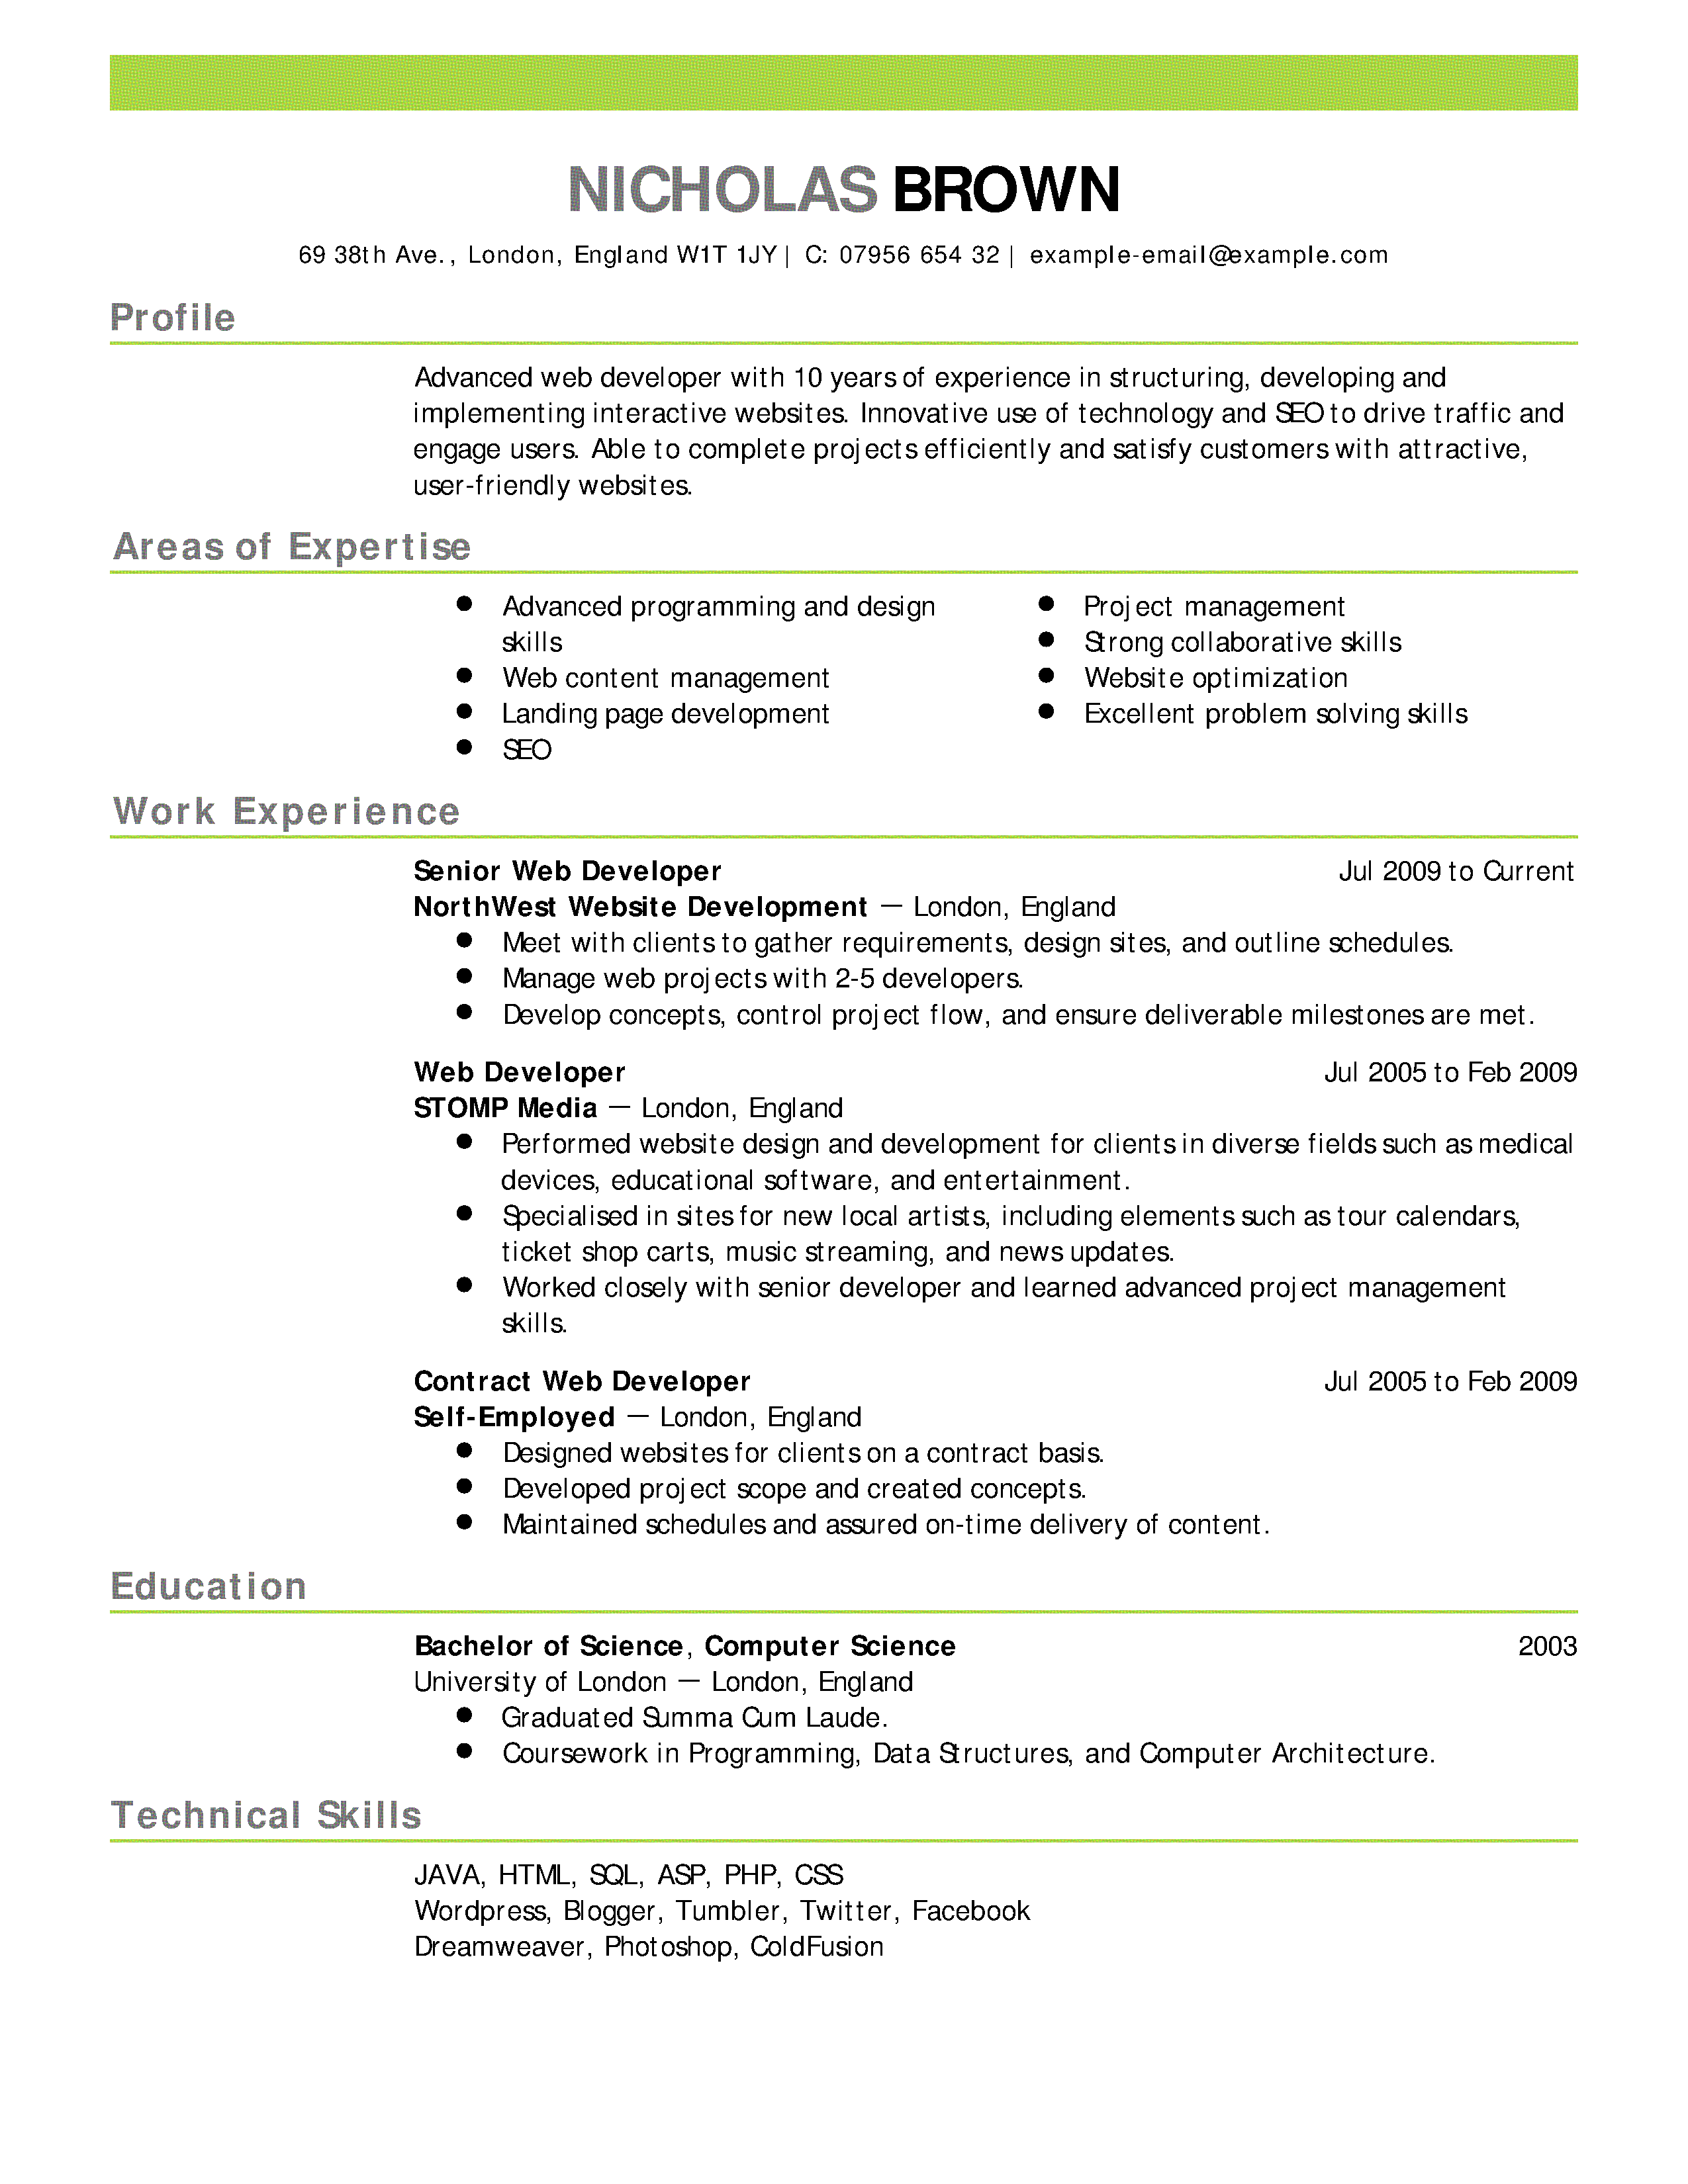 Help Doing A Resume Not Getting Interviews We Can Help You Change That